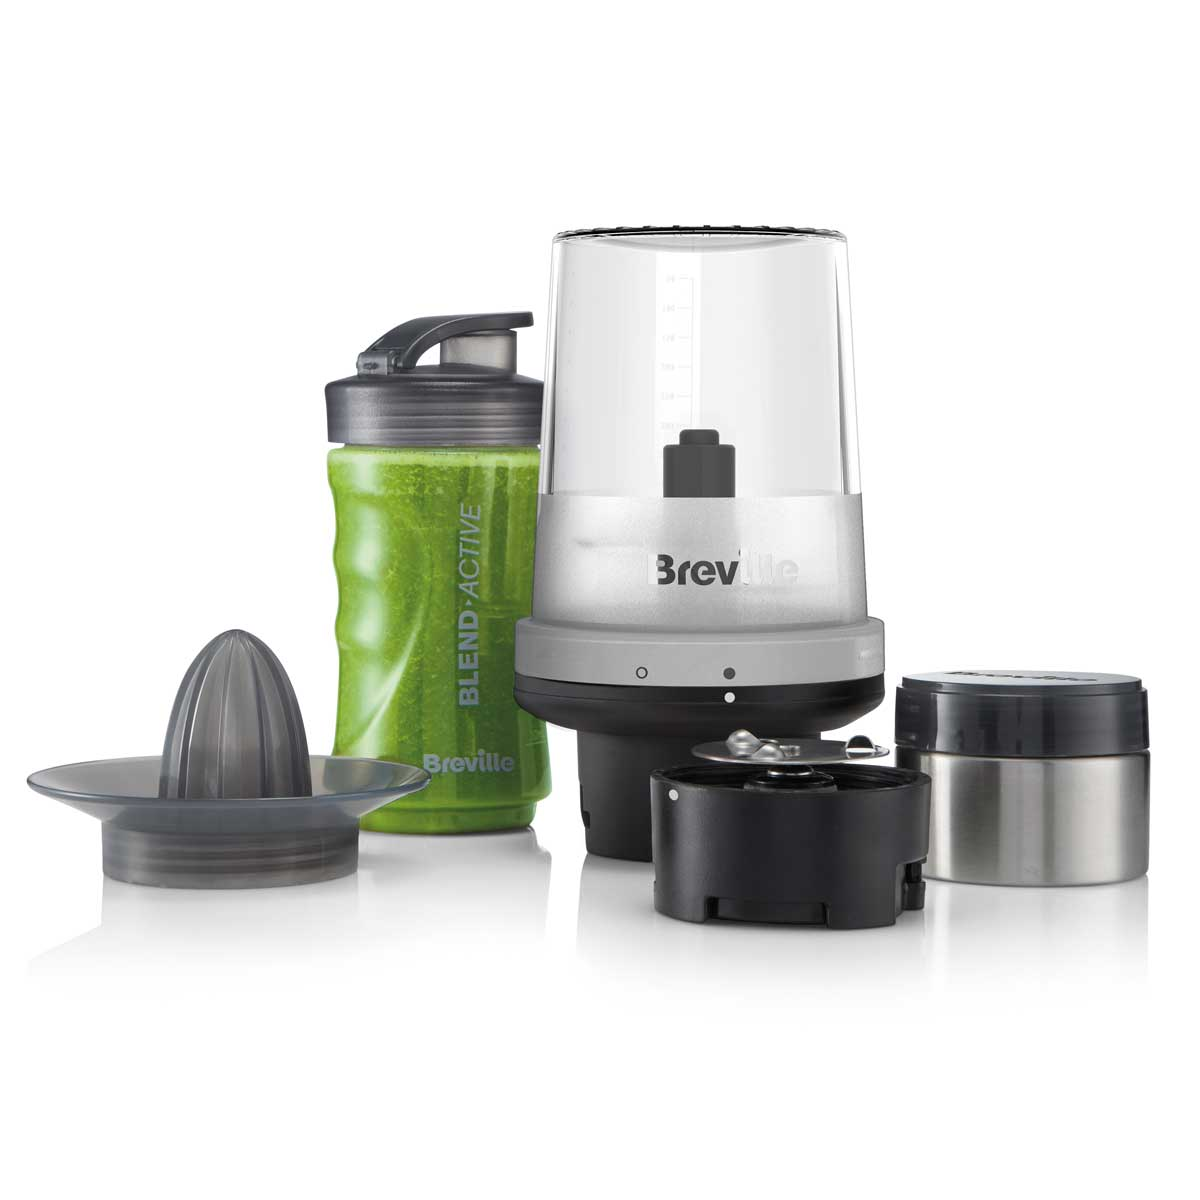 blend active accessory pack - Breville Food Processor